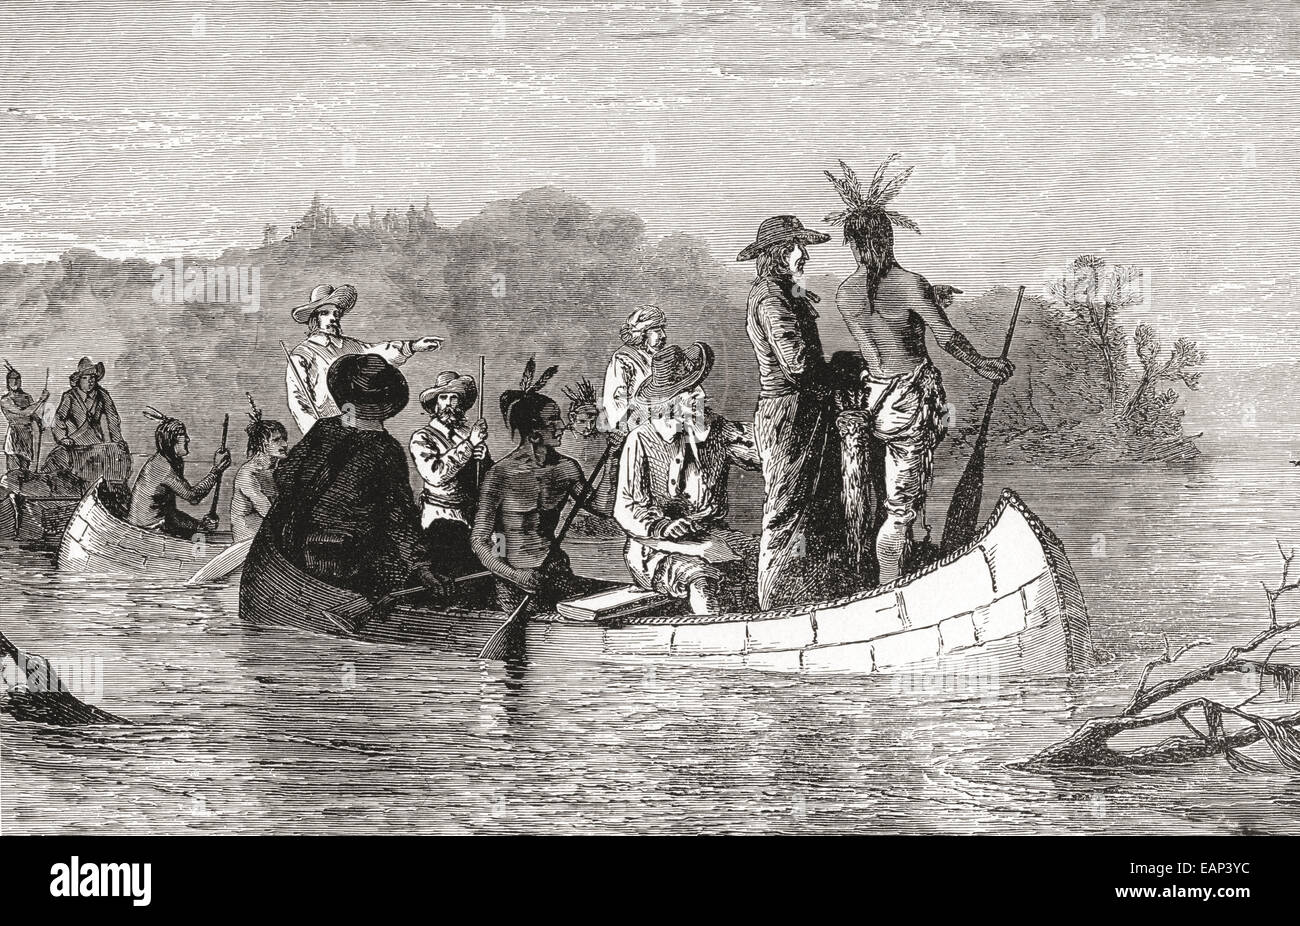 the joliet marquette expedition discover the mississippi in 1673 louis jolliet aka louis joliet